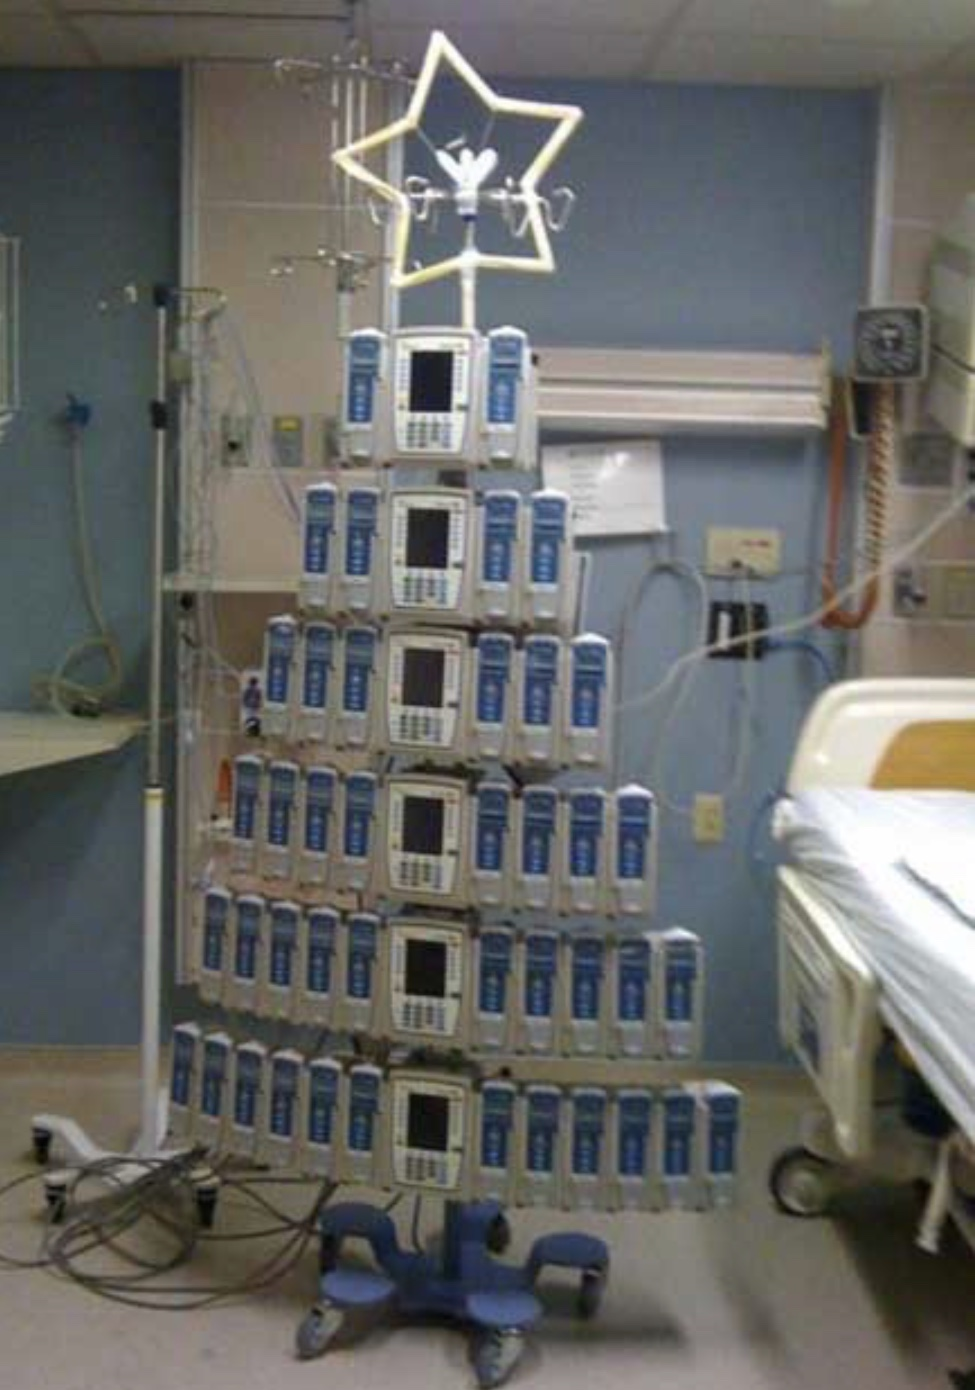 The IV pump Christmas tree - Where did all the pumps go? This one may look familiar as it was circulating a lot last year, but I still love it.